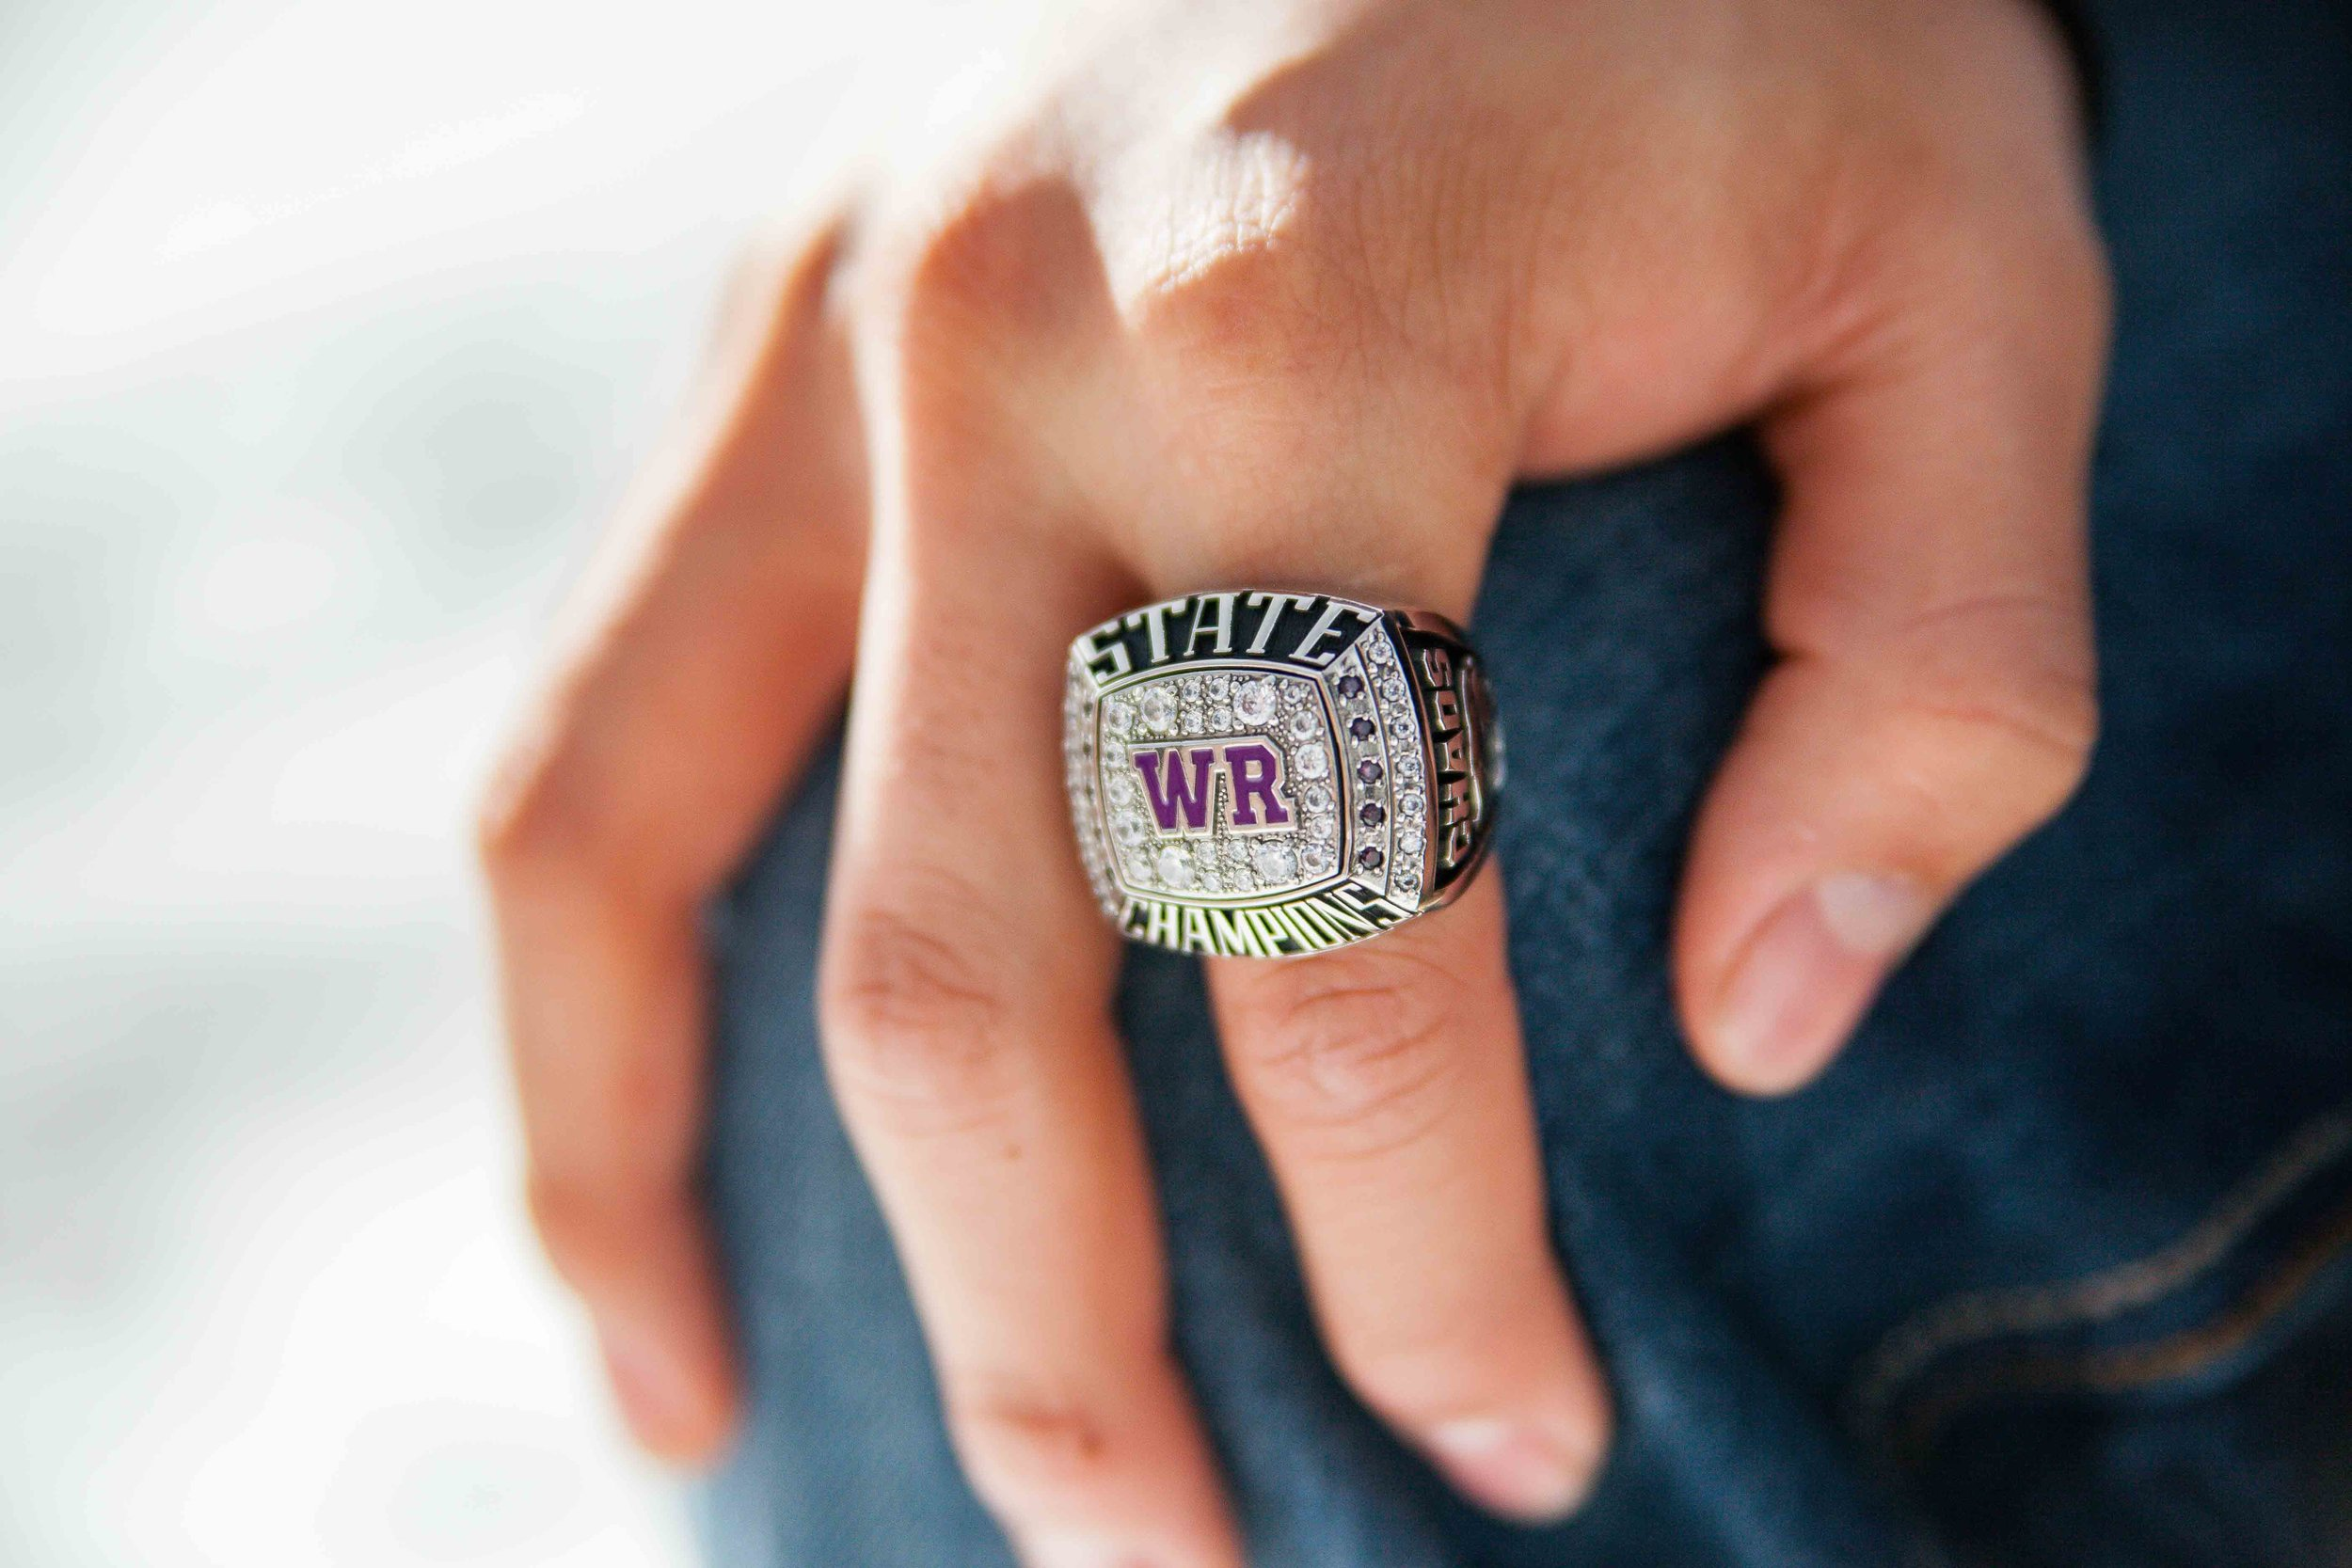 State Champion Ring - Sheridan Wy - Wind River - Capture what matters